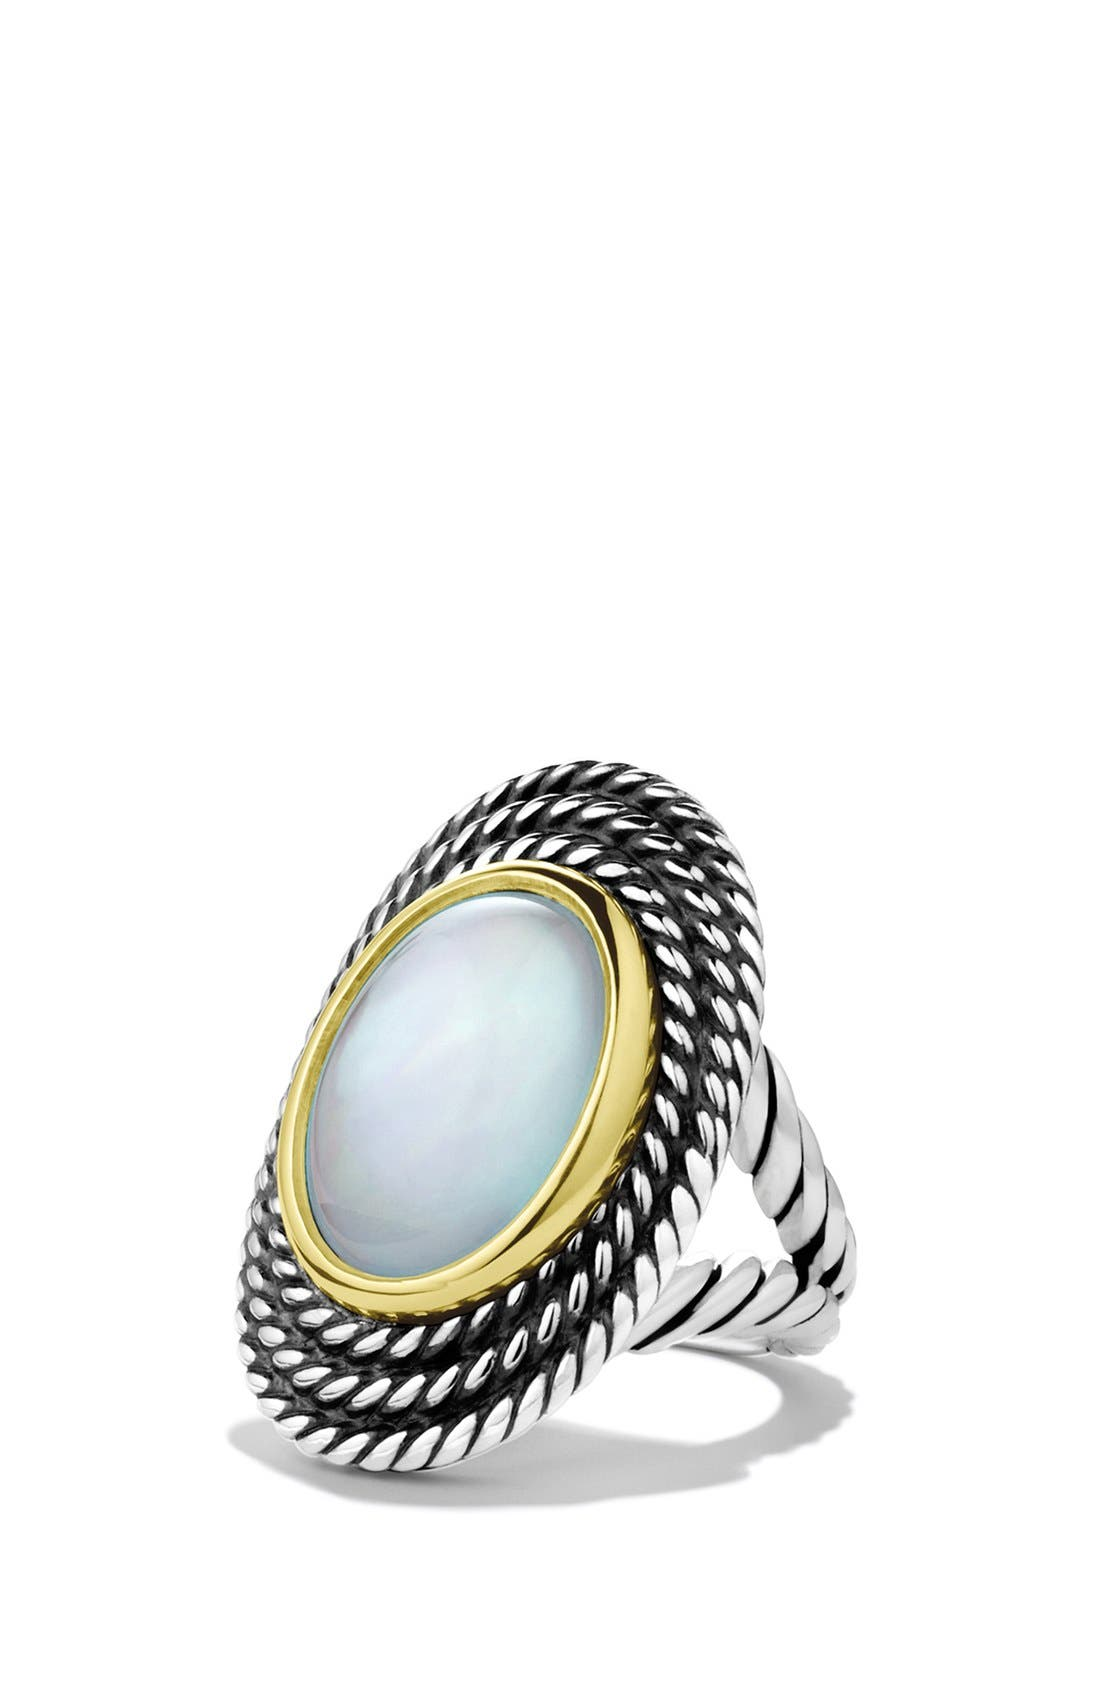 Main Image - David Yurman 'Cable Coil' Ring with Moon Quartz and Gold